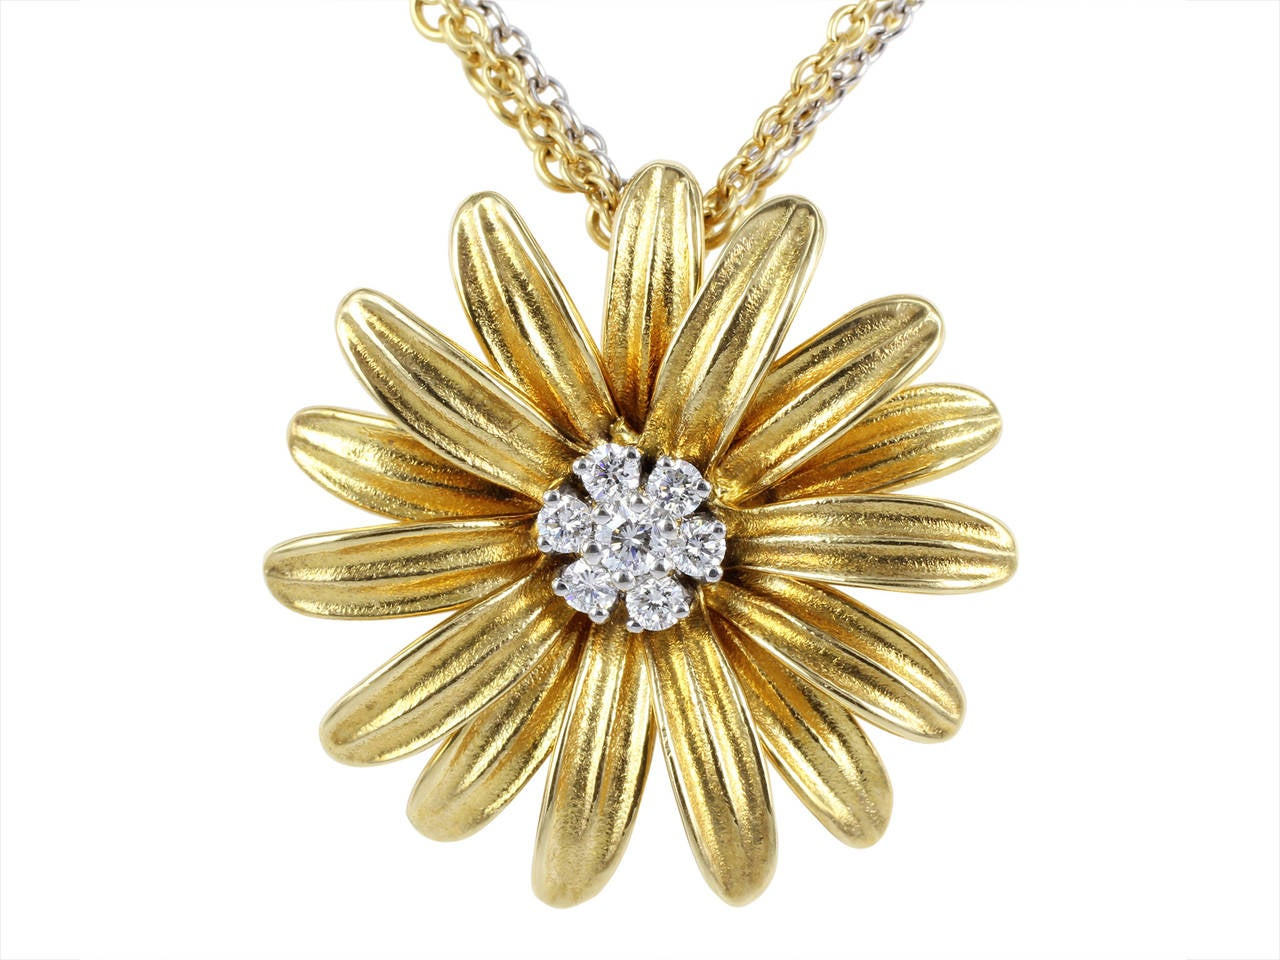 18 karat two tone yellow and white gold dimensional flower pendant by Aaron Henry consisting of 7 full cut round diamonds having a total weight of .28 carats designed in a matte and polished finish and attached to a triple strand 16 inch cable link